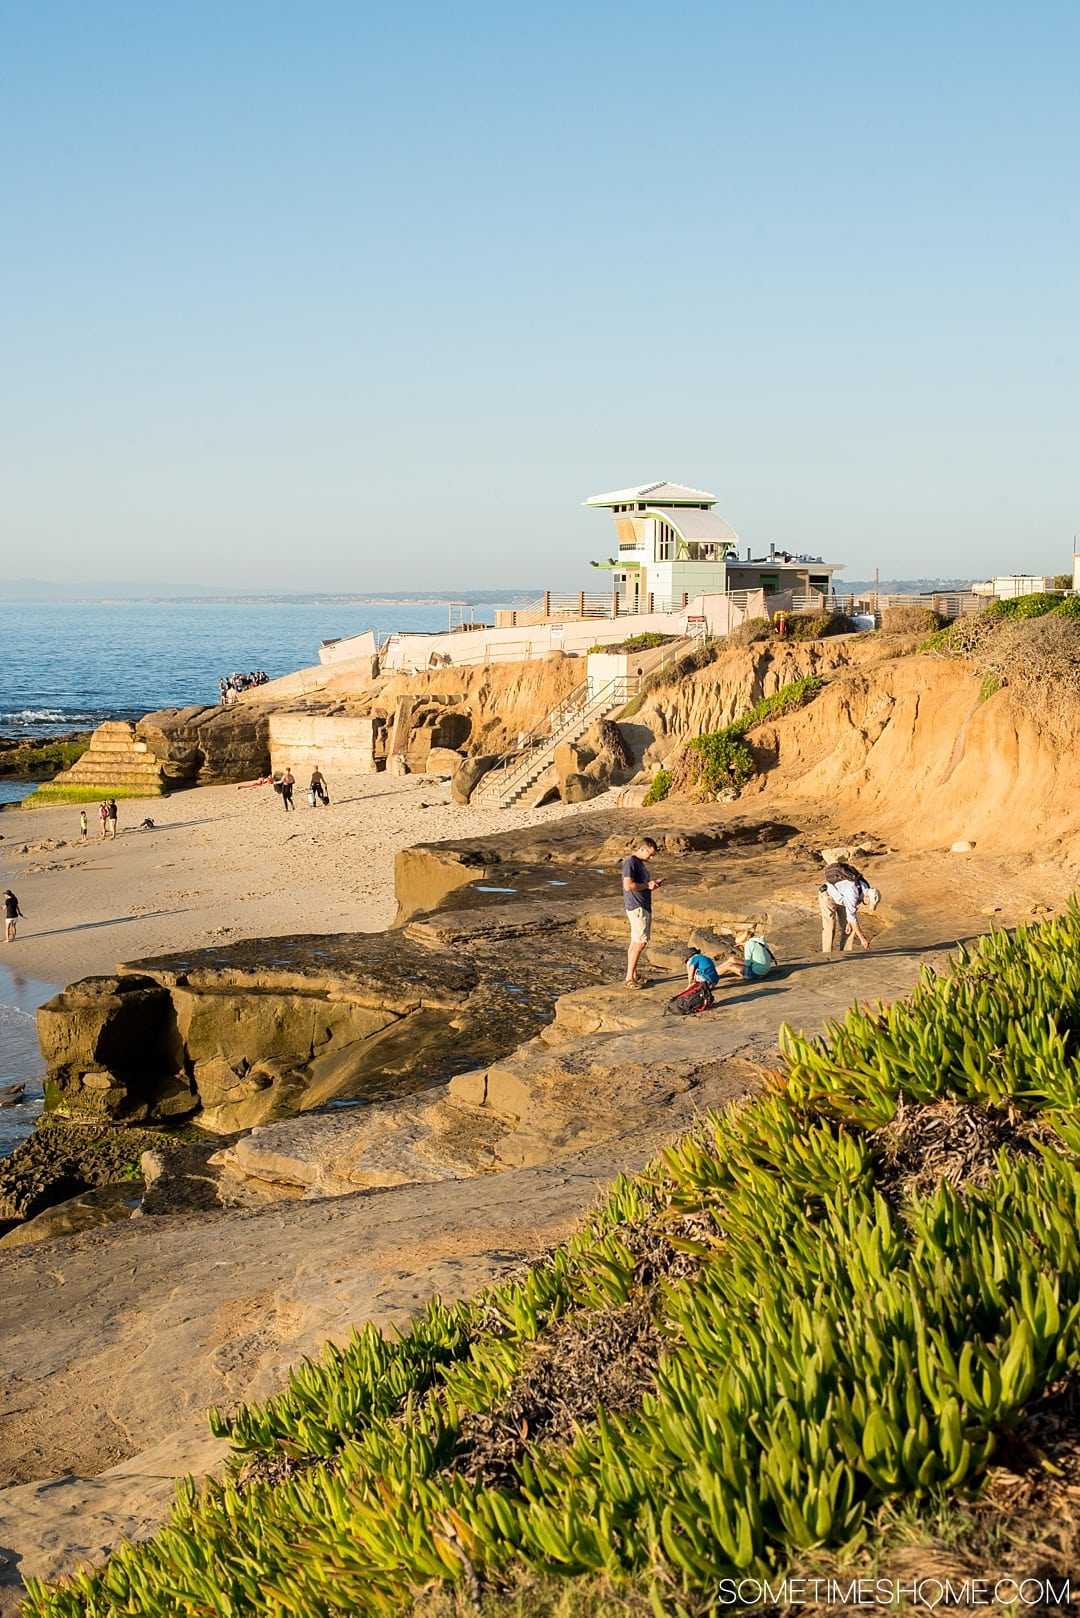 Thing to do in San Diego, California including vacation options on a low budget. Top travel include Balboa Park, the SD zoo, Gaslamp District downtown, La Jolla Cove, food options, Del Mar beach, and more great attractions in this beautiful Instagram-worthy area. Click through for the complete details and dreamy pictures! #SanDiego #California #SanDiegoLowBudget #SometimesHome #SanDiegoCA #SanDiegoCalifornia